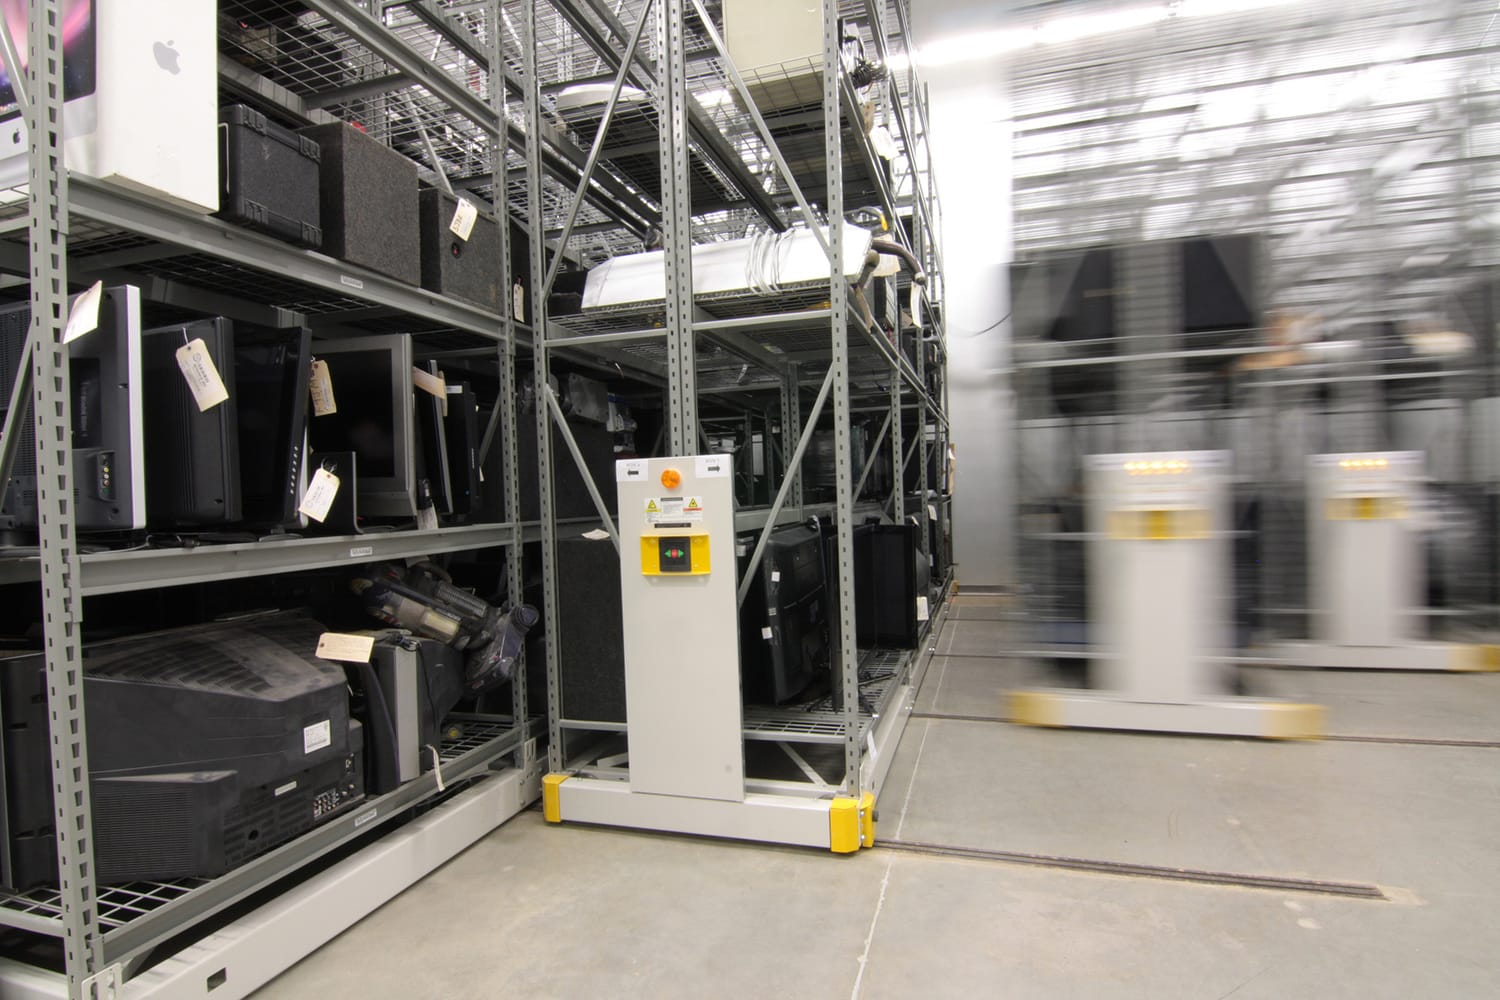 Powered industrial mobile shelving systems storing oversized evidence